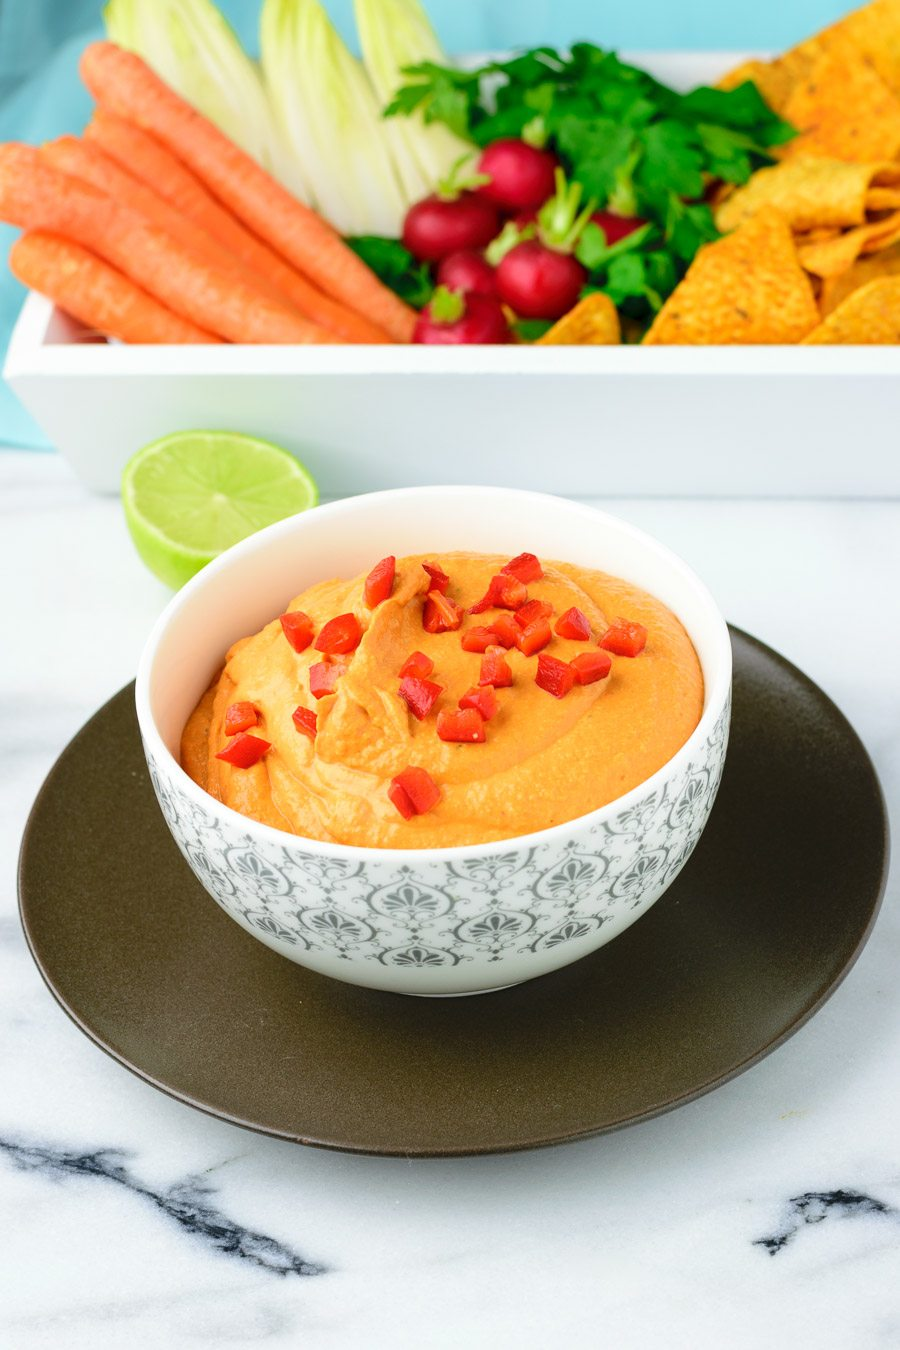 Bowl of the Easy Vegan Pimento Cheese garnished with diced bell pepper.